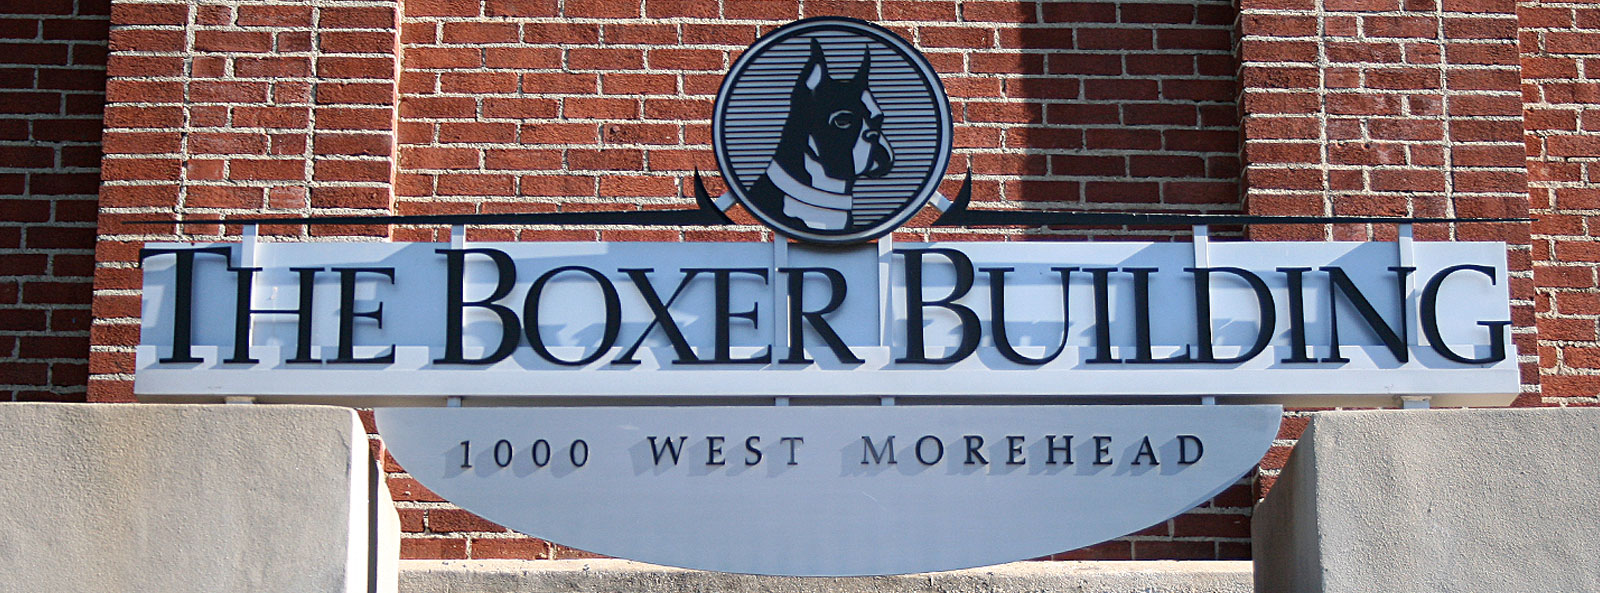 The Boxer Building was built in 1927 and is currently 75% leased.